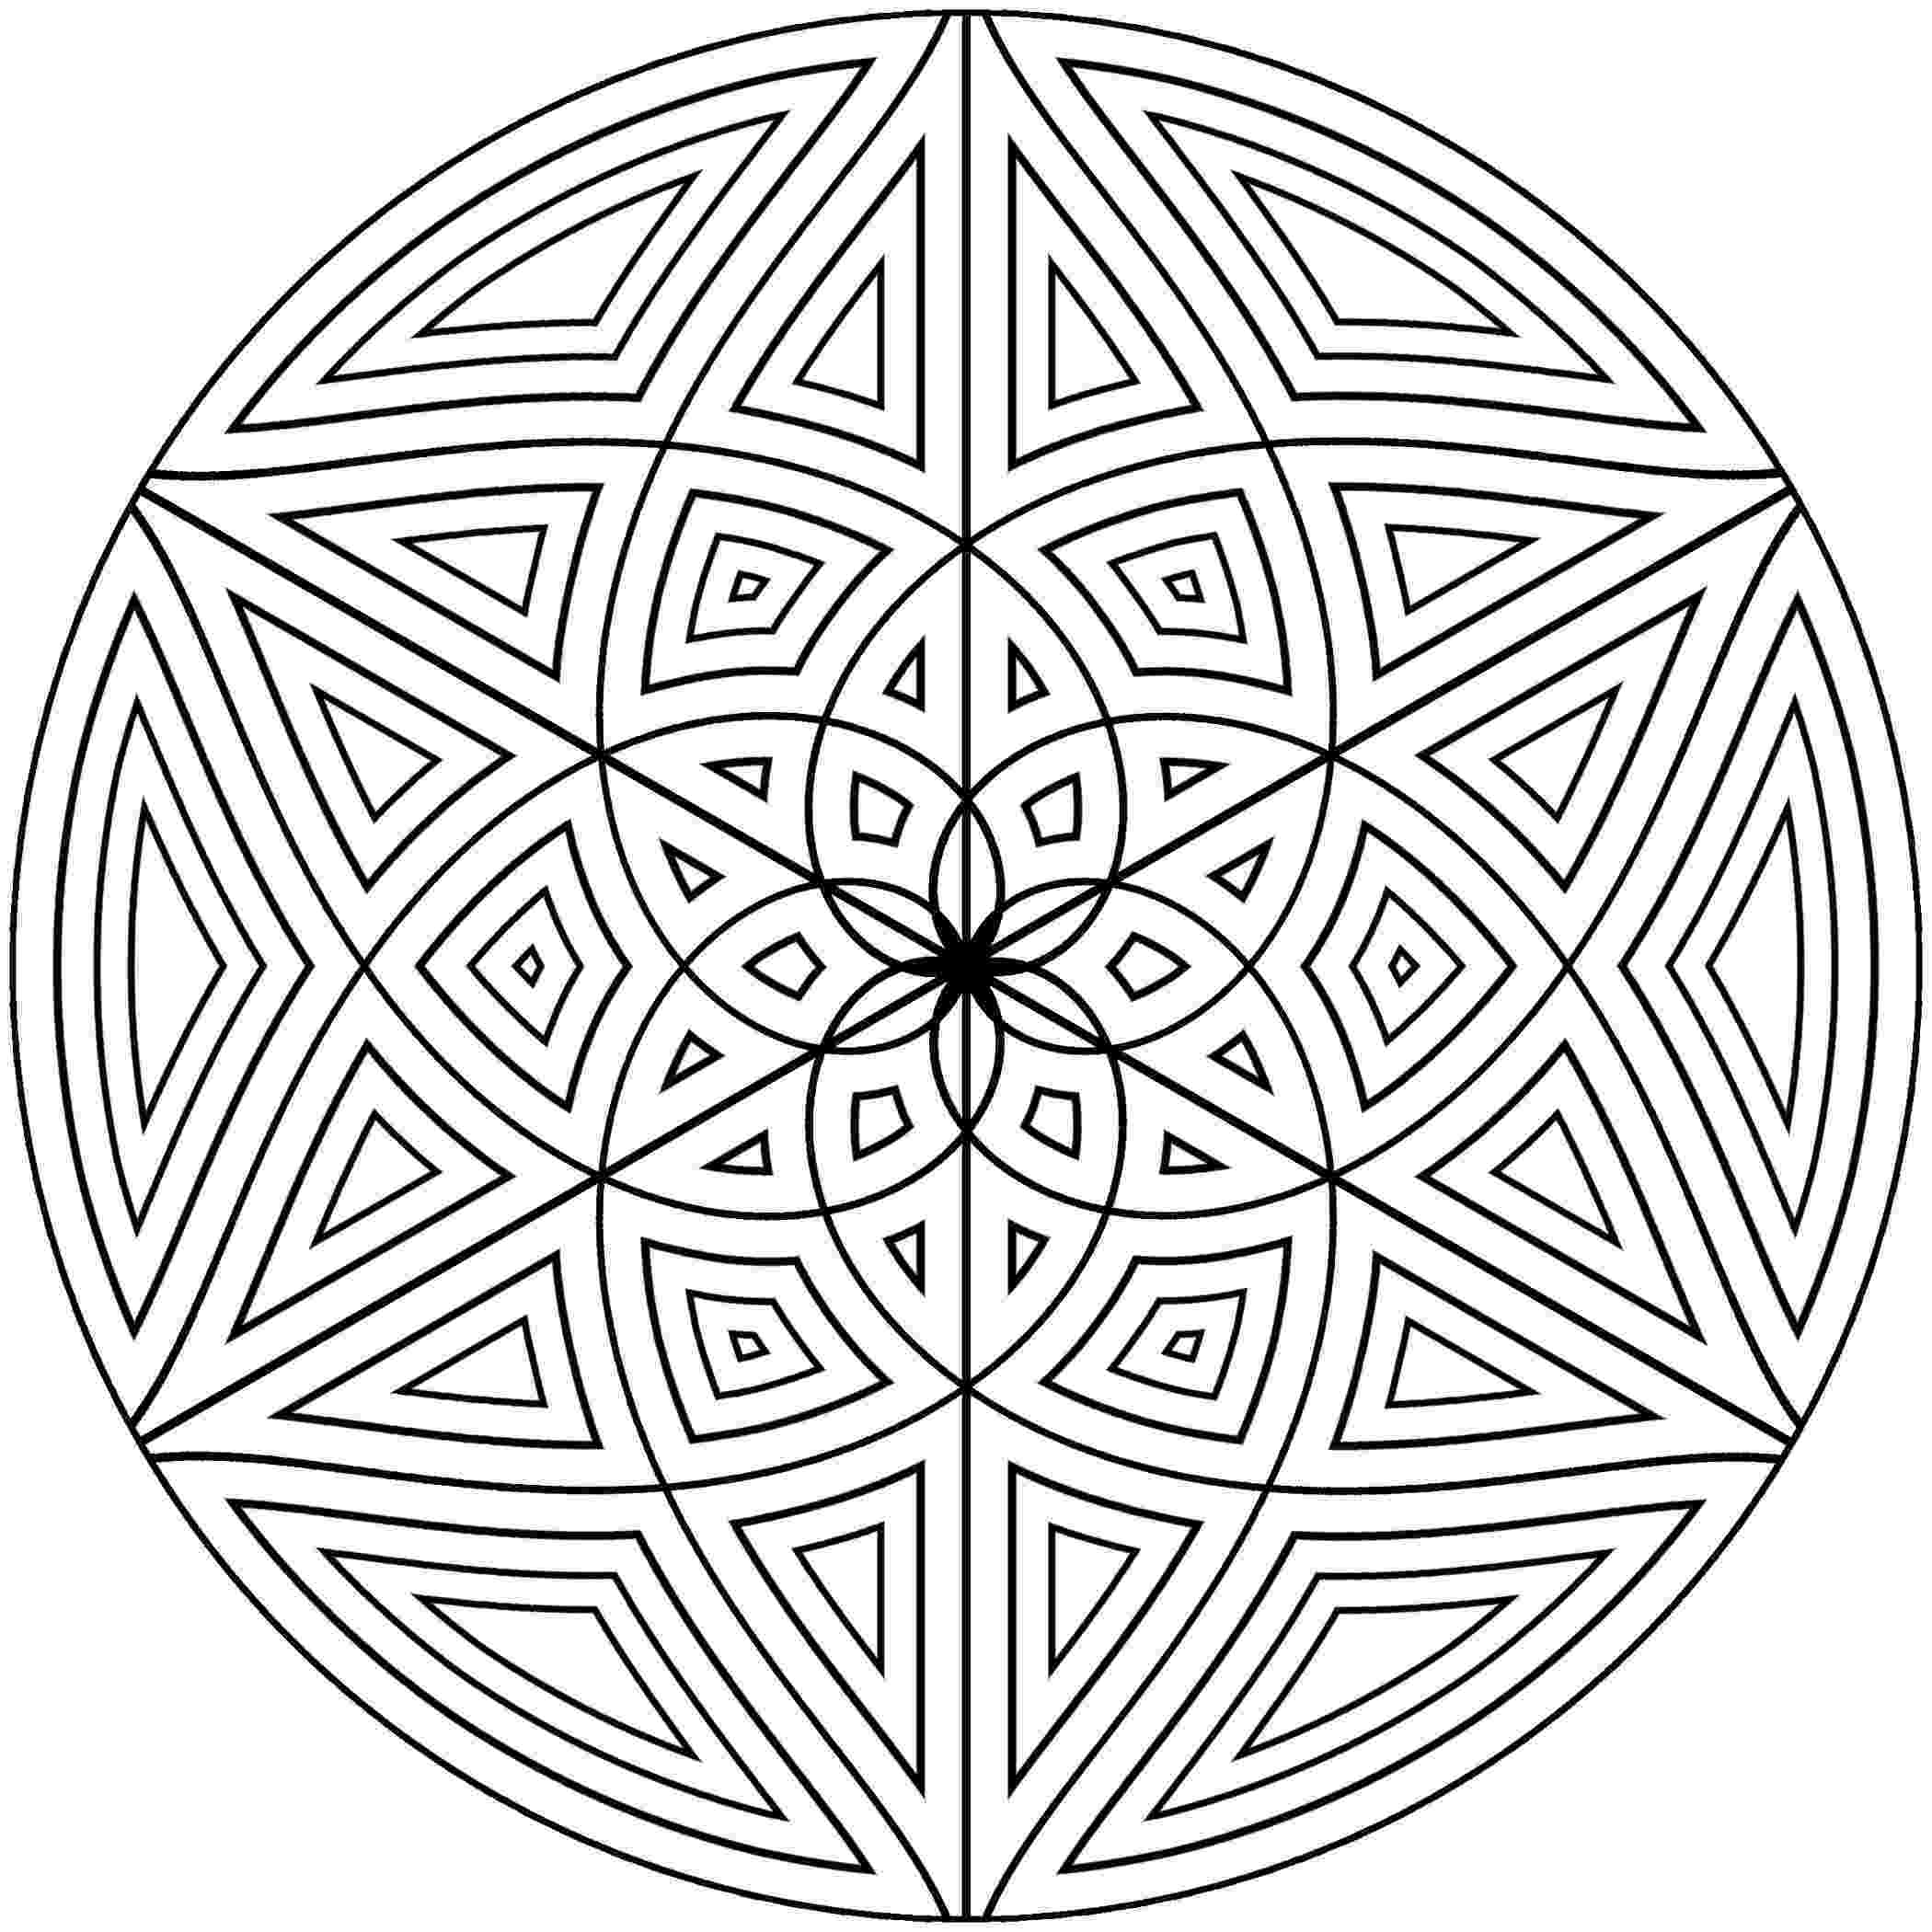 patterns to colour for adults free printable geometric coloring pages for adults adults patterns to colour for